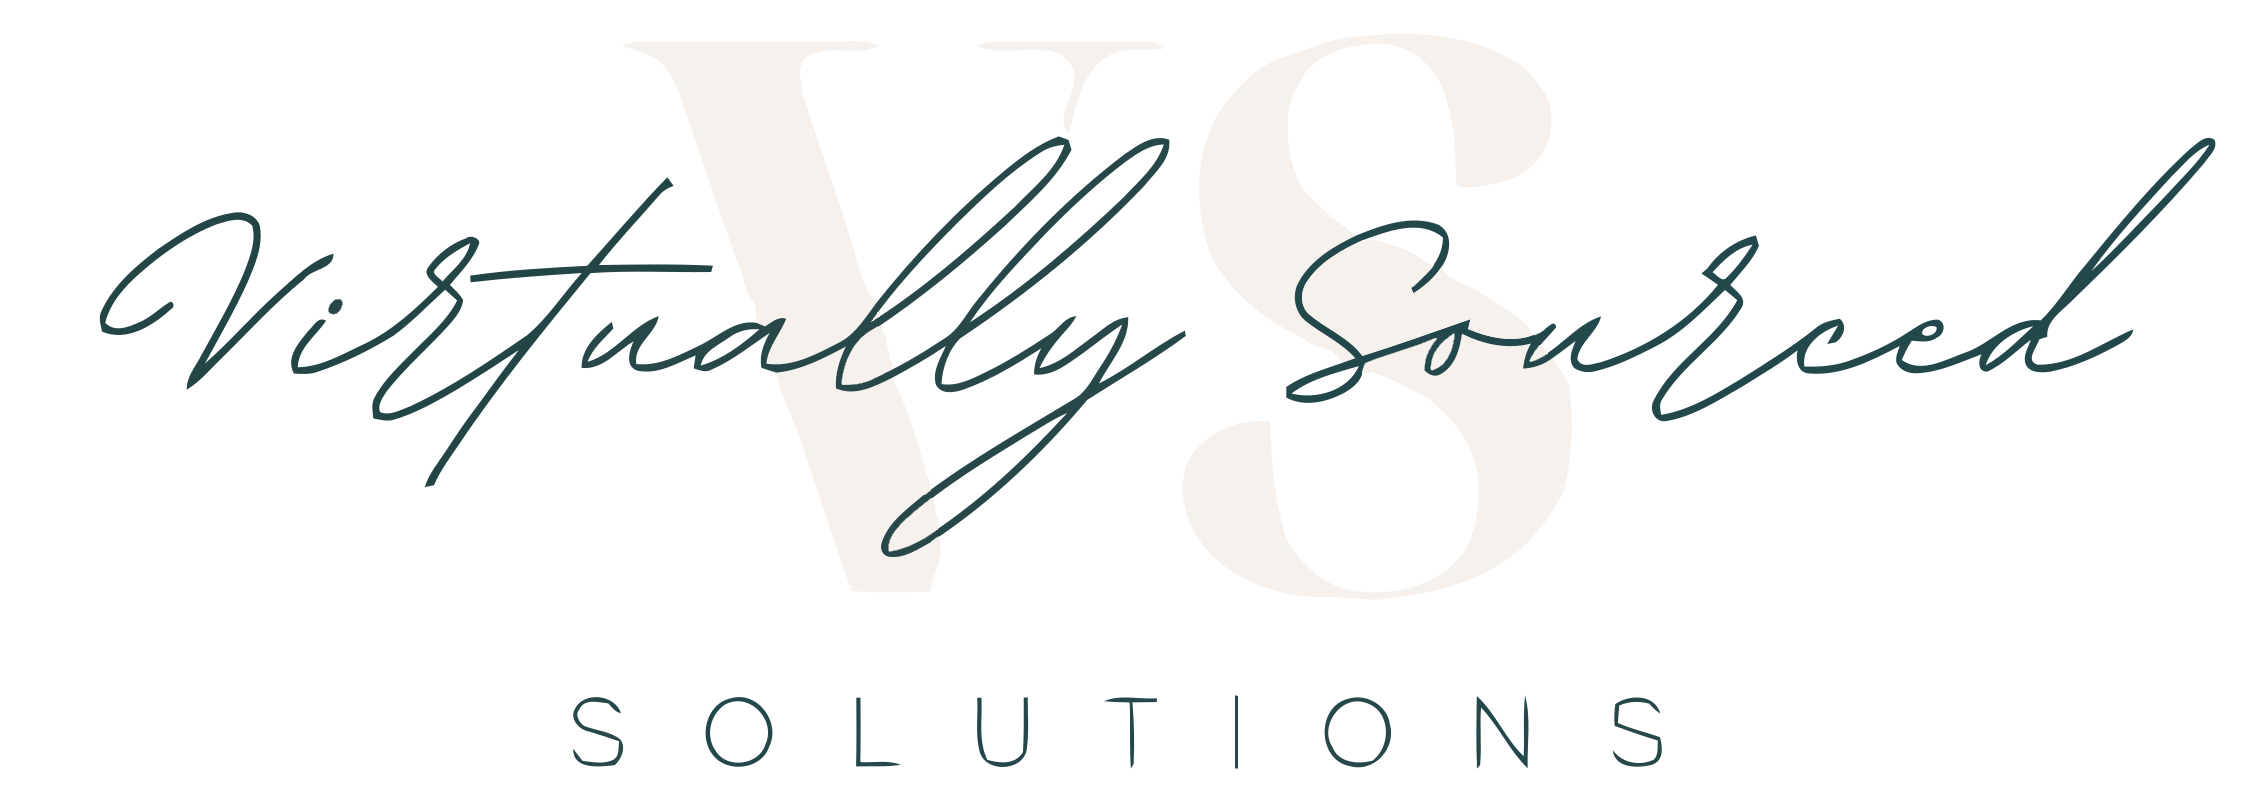 Virtually Sourced Solutions